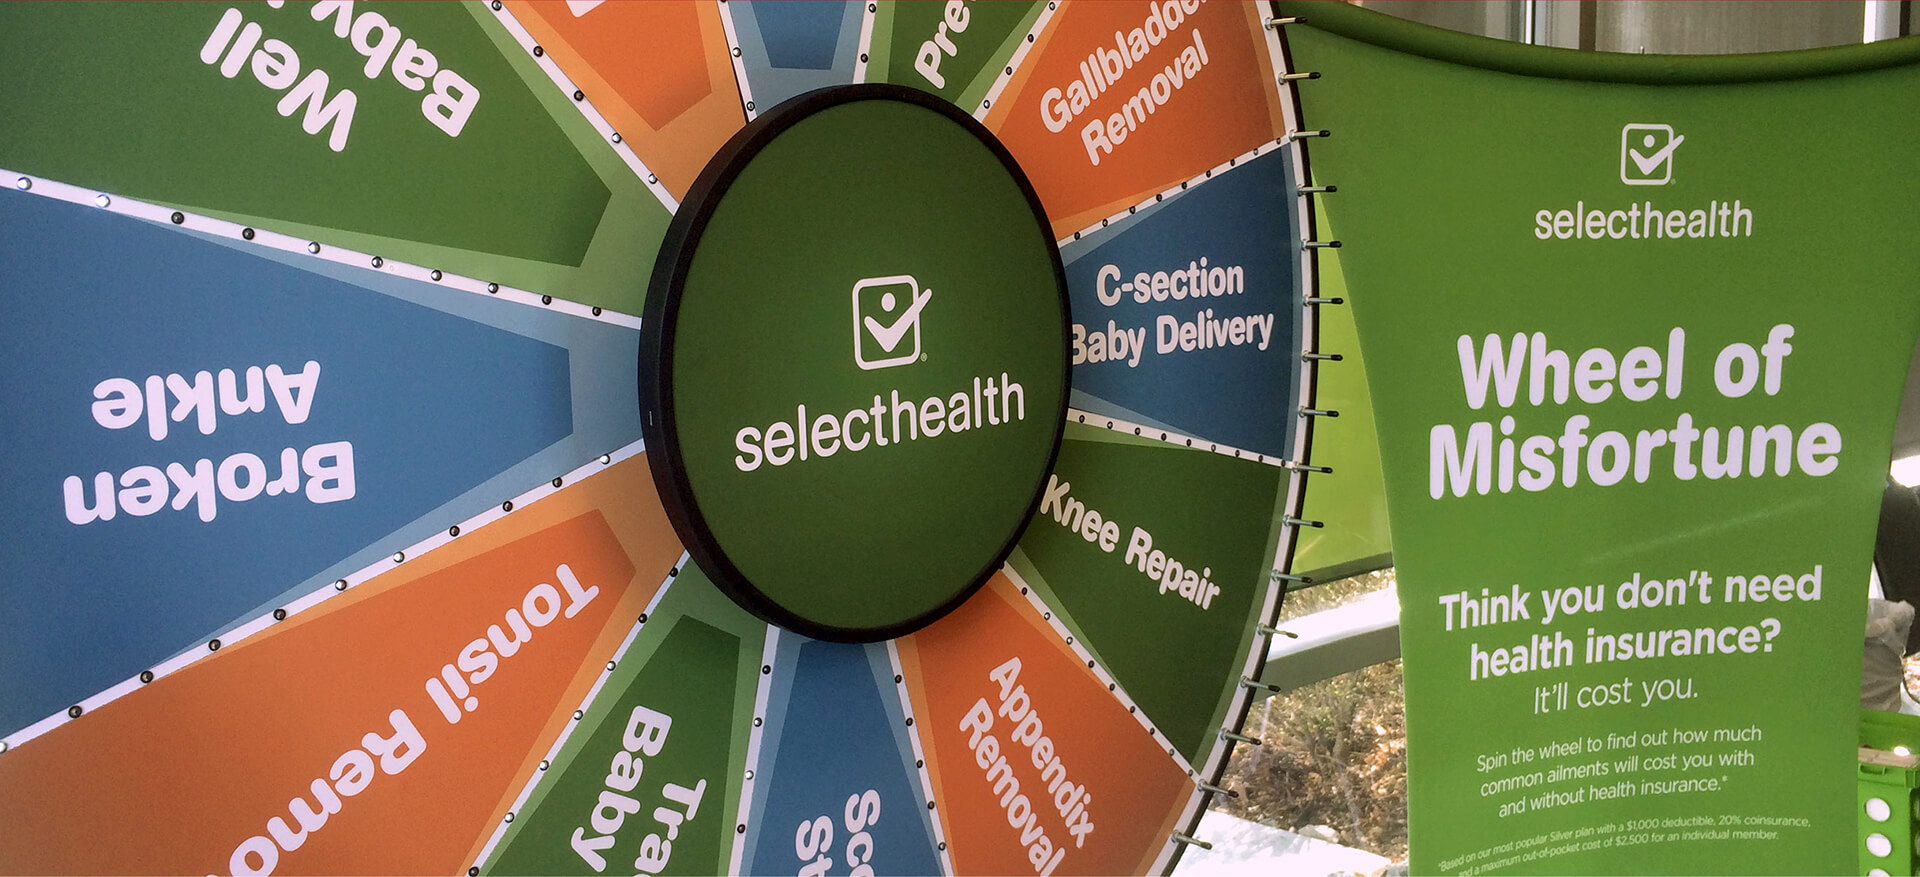 SelectHealth Wheel of Misfortune